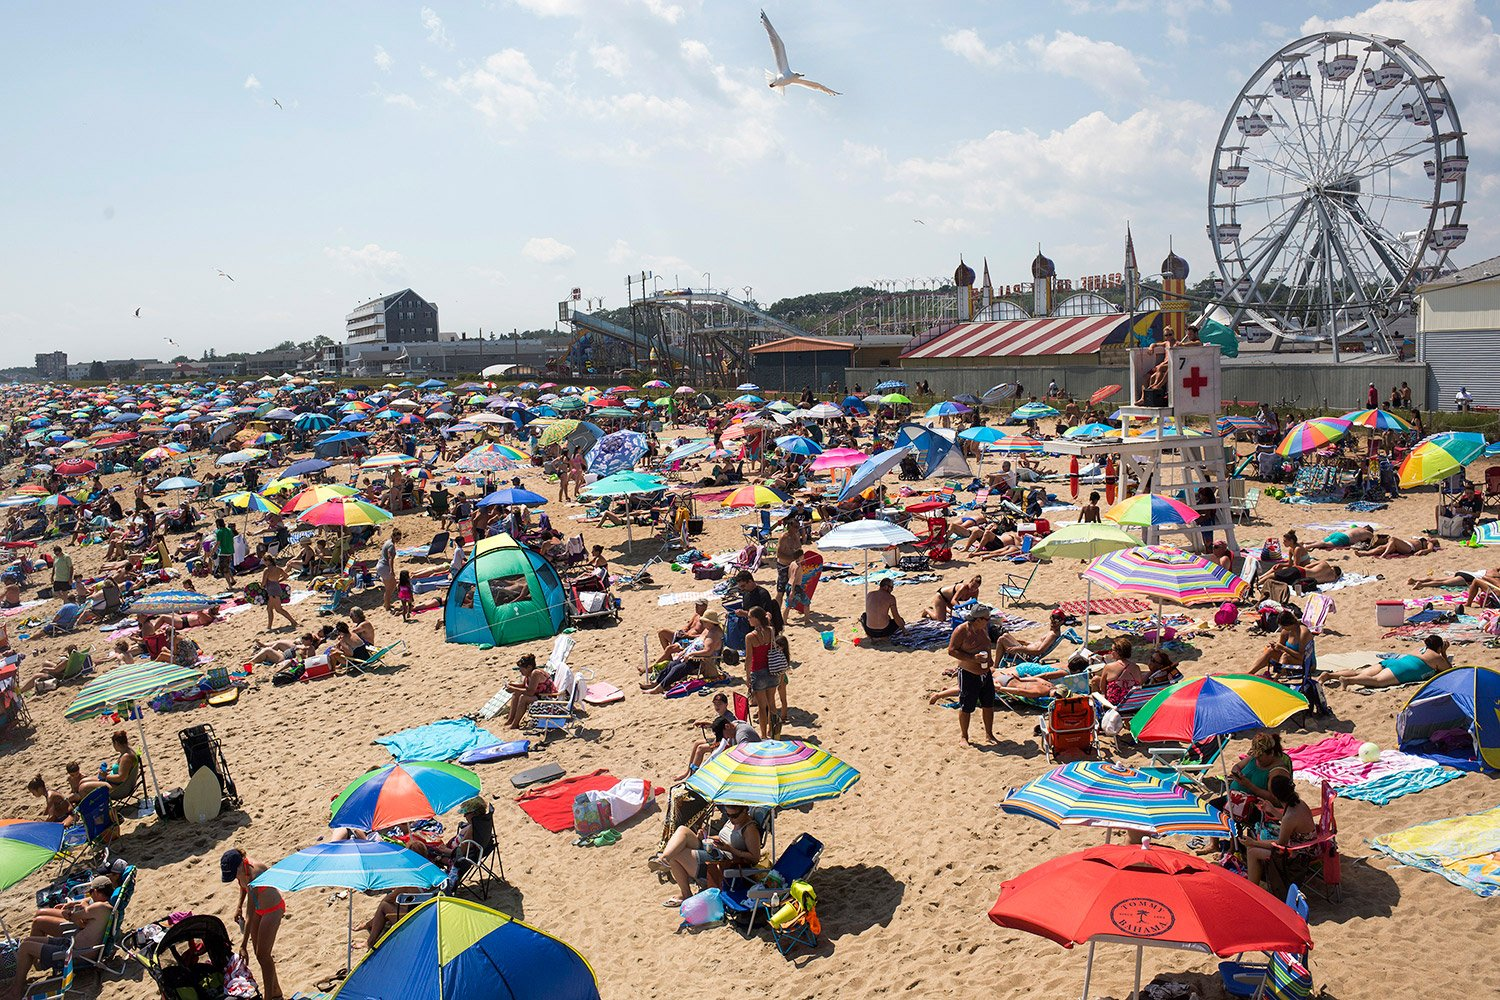 Even in what is perceived to be a down year for Canadian tourists, the beach is packed at noon on one recent summer day. A clerk at the nearby Inn at Soho Square said the slumping Canadian economy had opened the door to a new wave of first-time American guests.